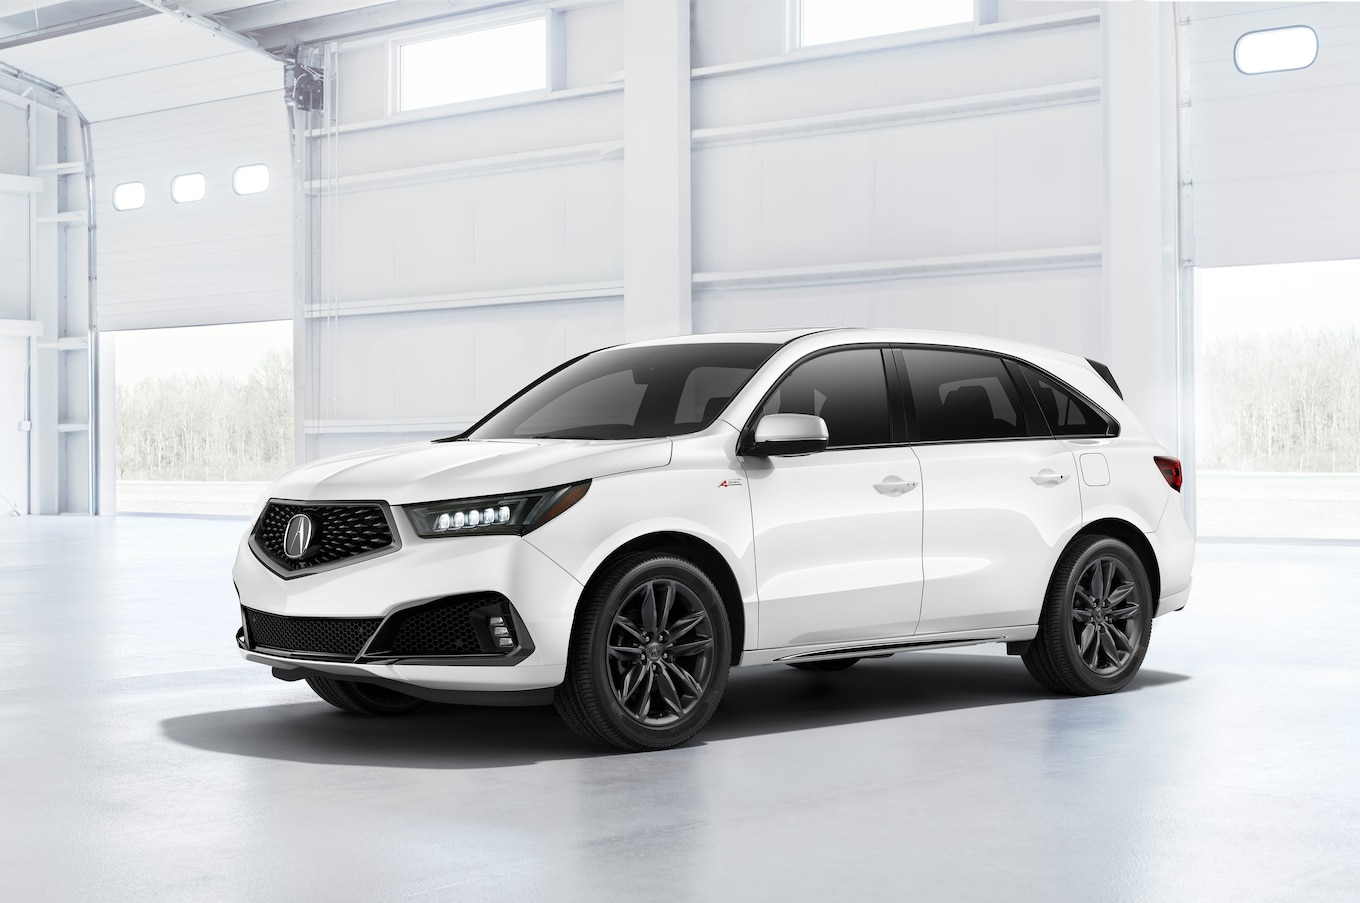 2019 Acura MDX Receives A-Spec Package, Updated Nine-Speed ...